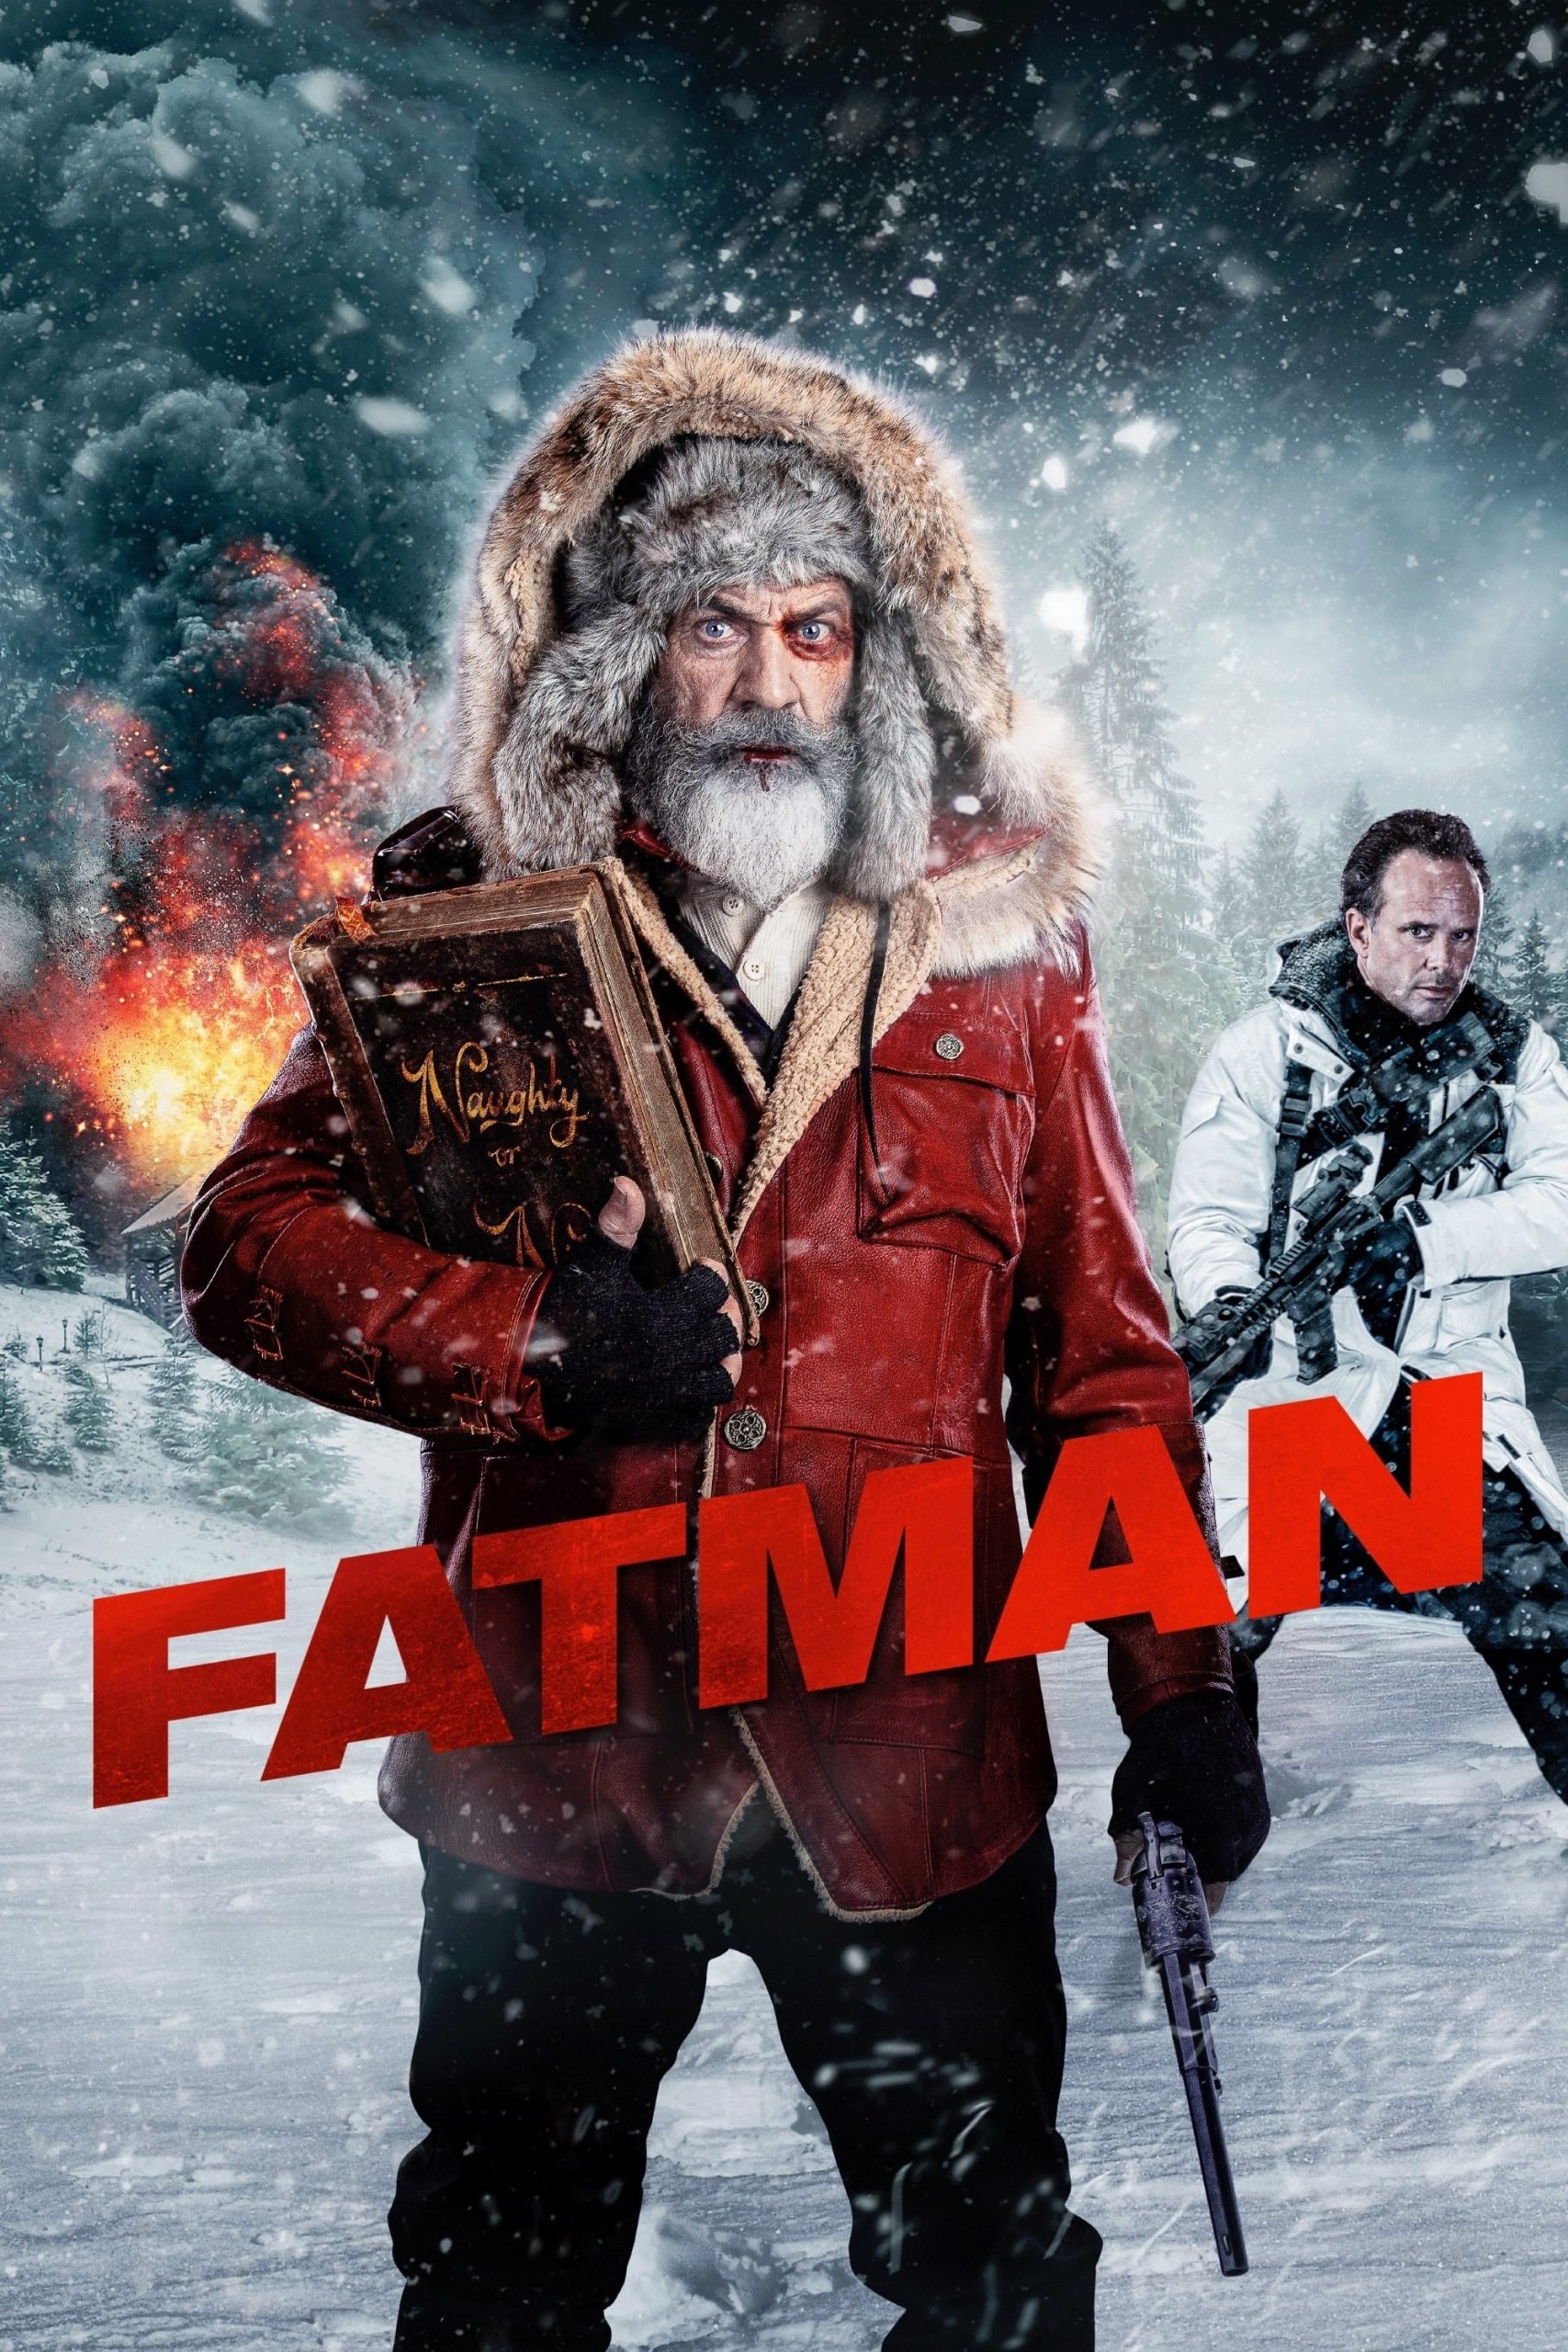 Fatman (2020) Subtitle Indonesia